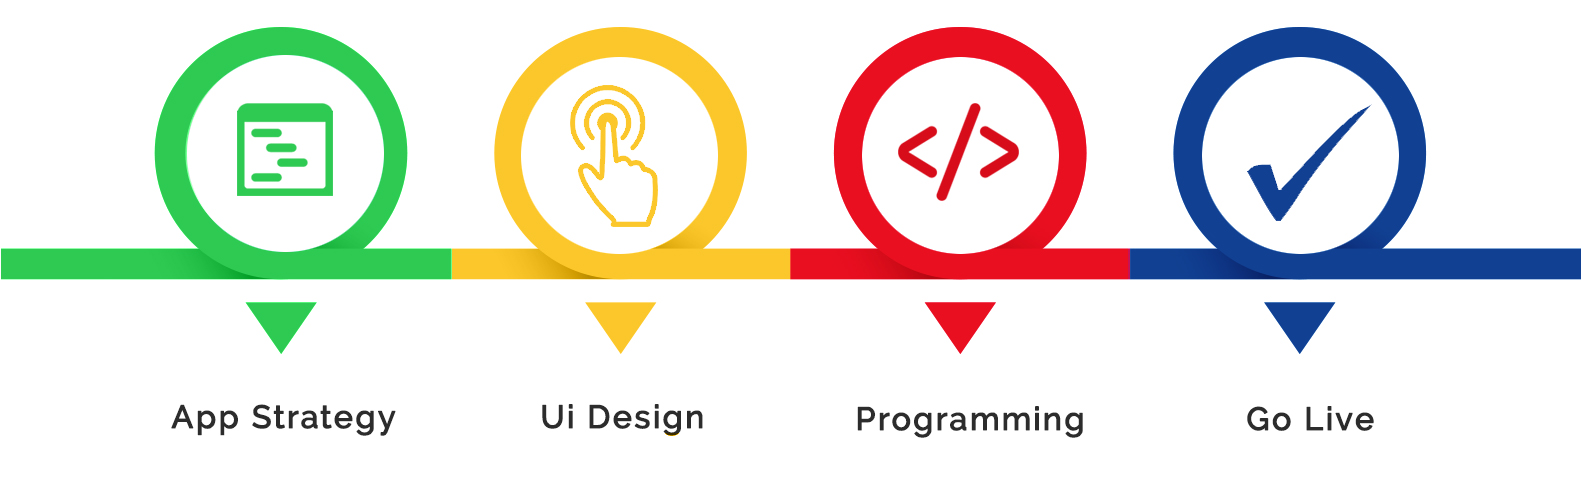 Software Development Services Life Cycle